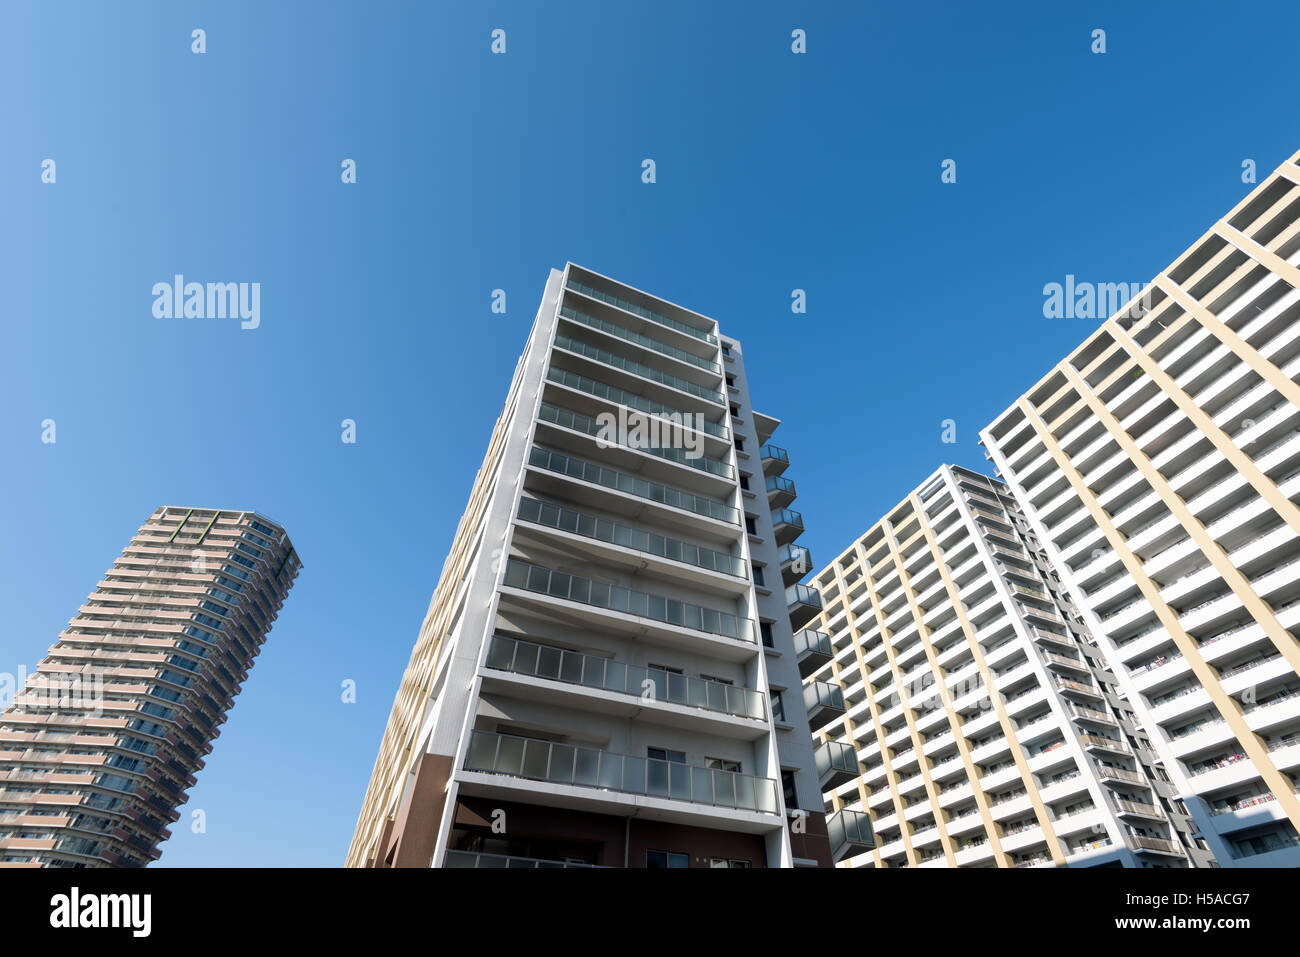 Osaka, Japan – November 30 2015: Modern condominium in Osaka, Japan near near the Osaka harbor, Cosmo Tower. - Stock Image